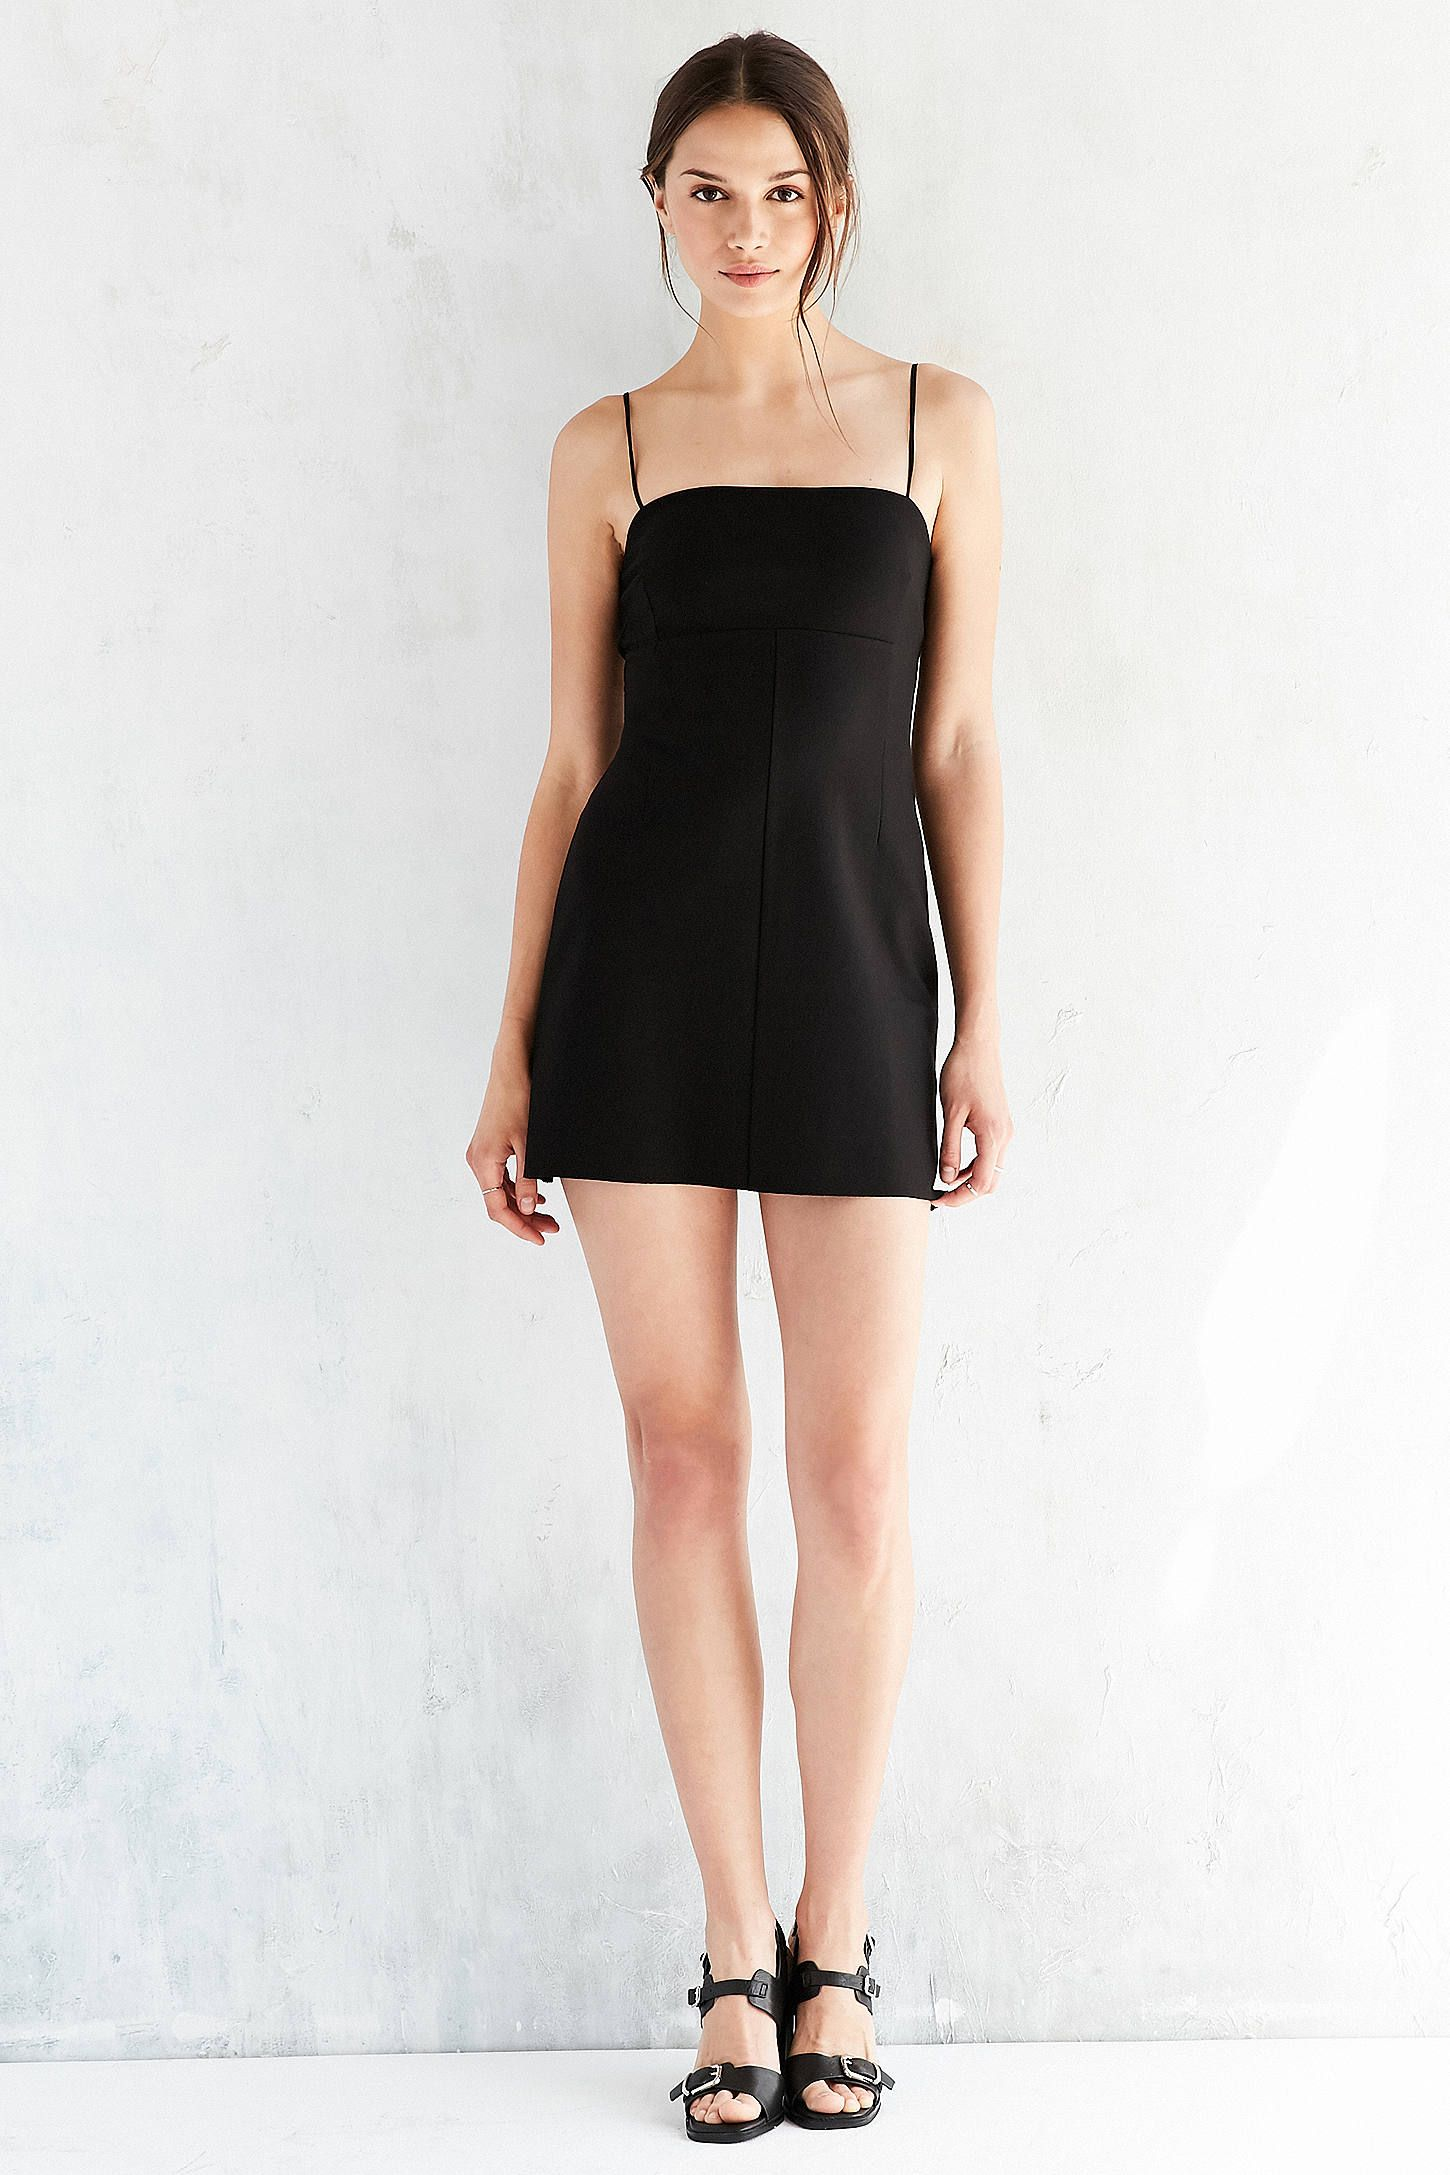 42ab3df2aaf1a Silence + Noise Audrey Black A-Line Mini Slip Dress | Urban Outfitters